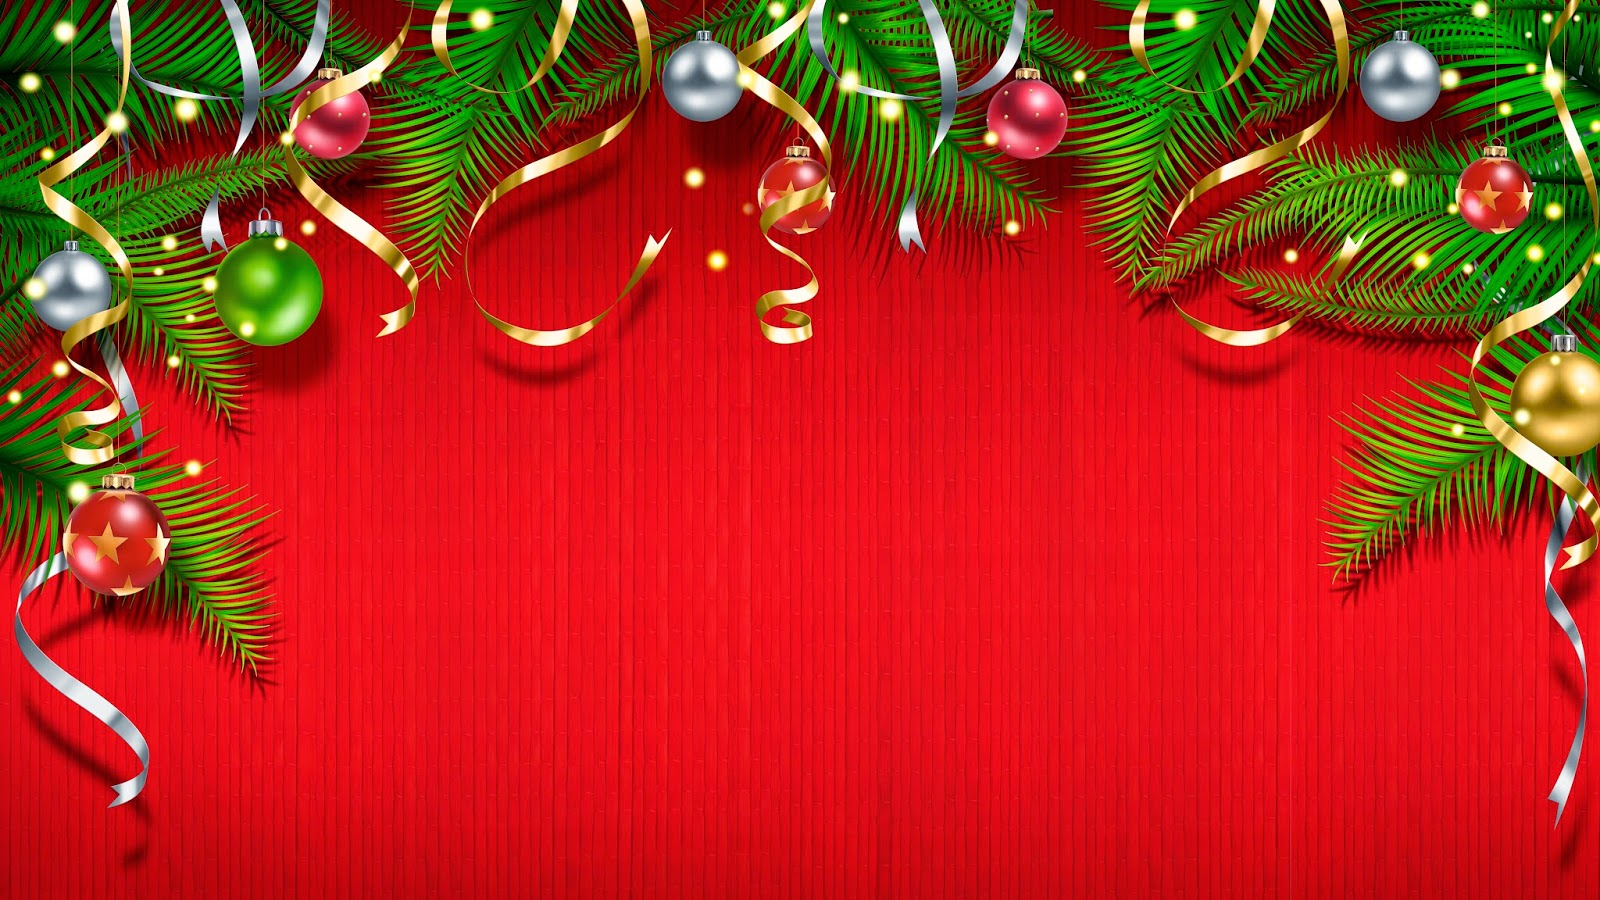 Christmas-Red-Background-greeting-template-HD-card-with-green-garland-ribbons-balls-on-top-image-6000x3375.jpg